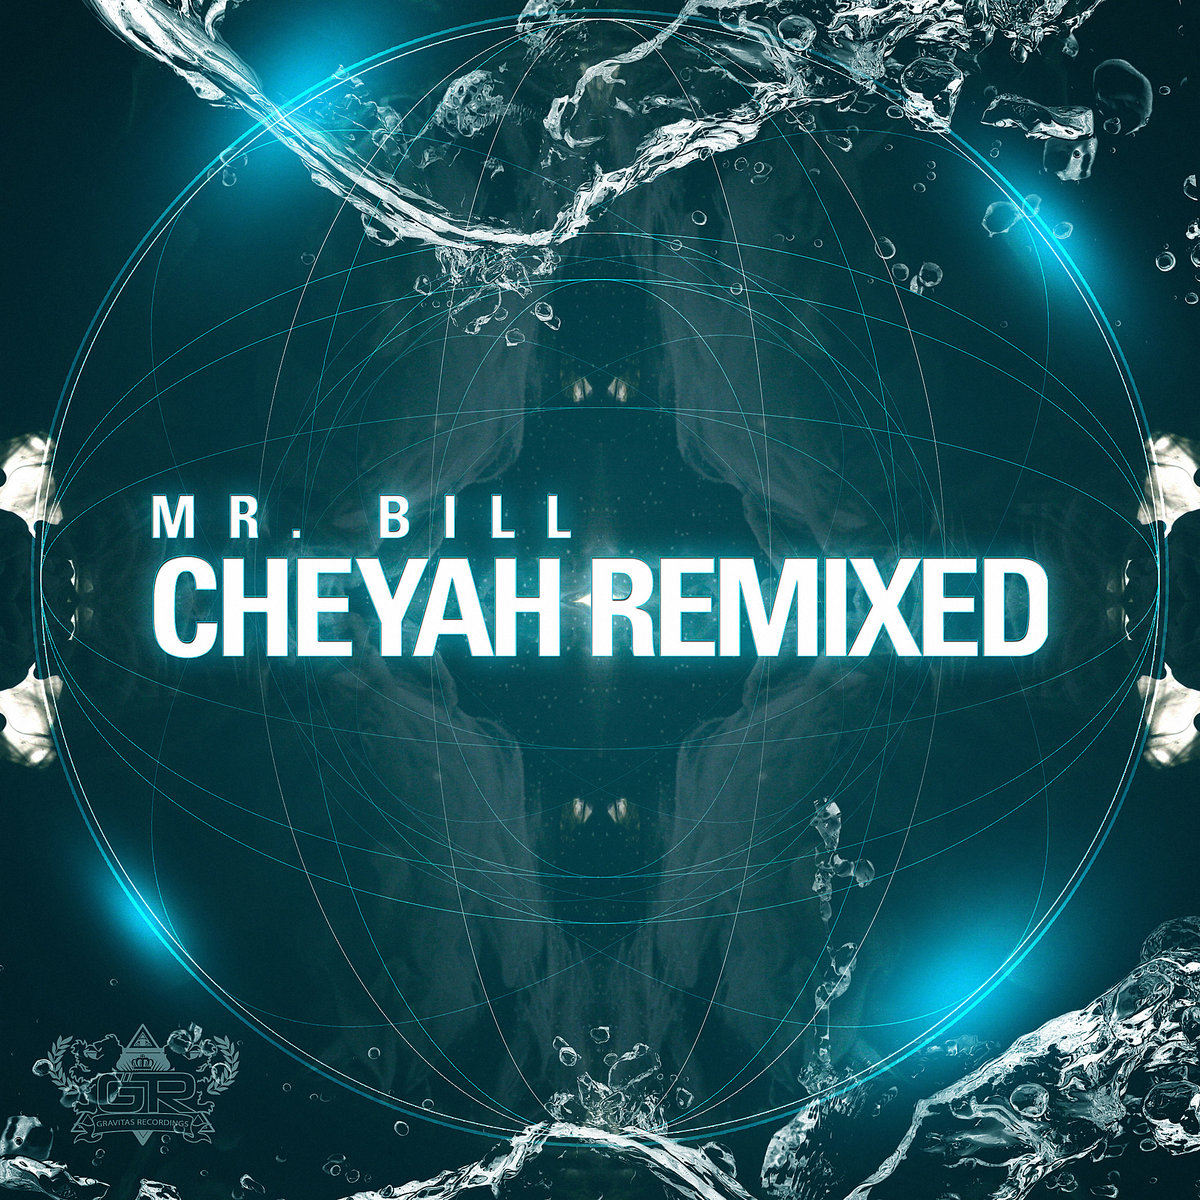 Mr. Bill - Cheyah (GRUFF Remix) @ 'Cheyah Remixed' album (australia, idm)